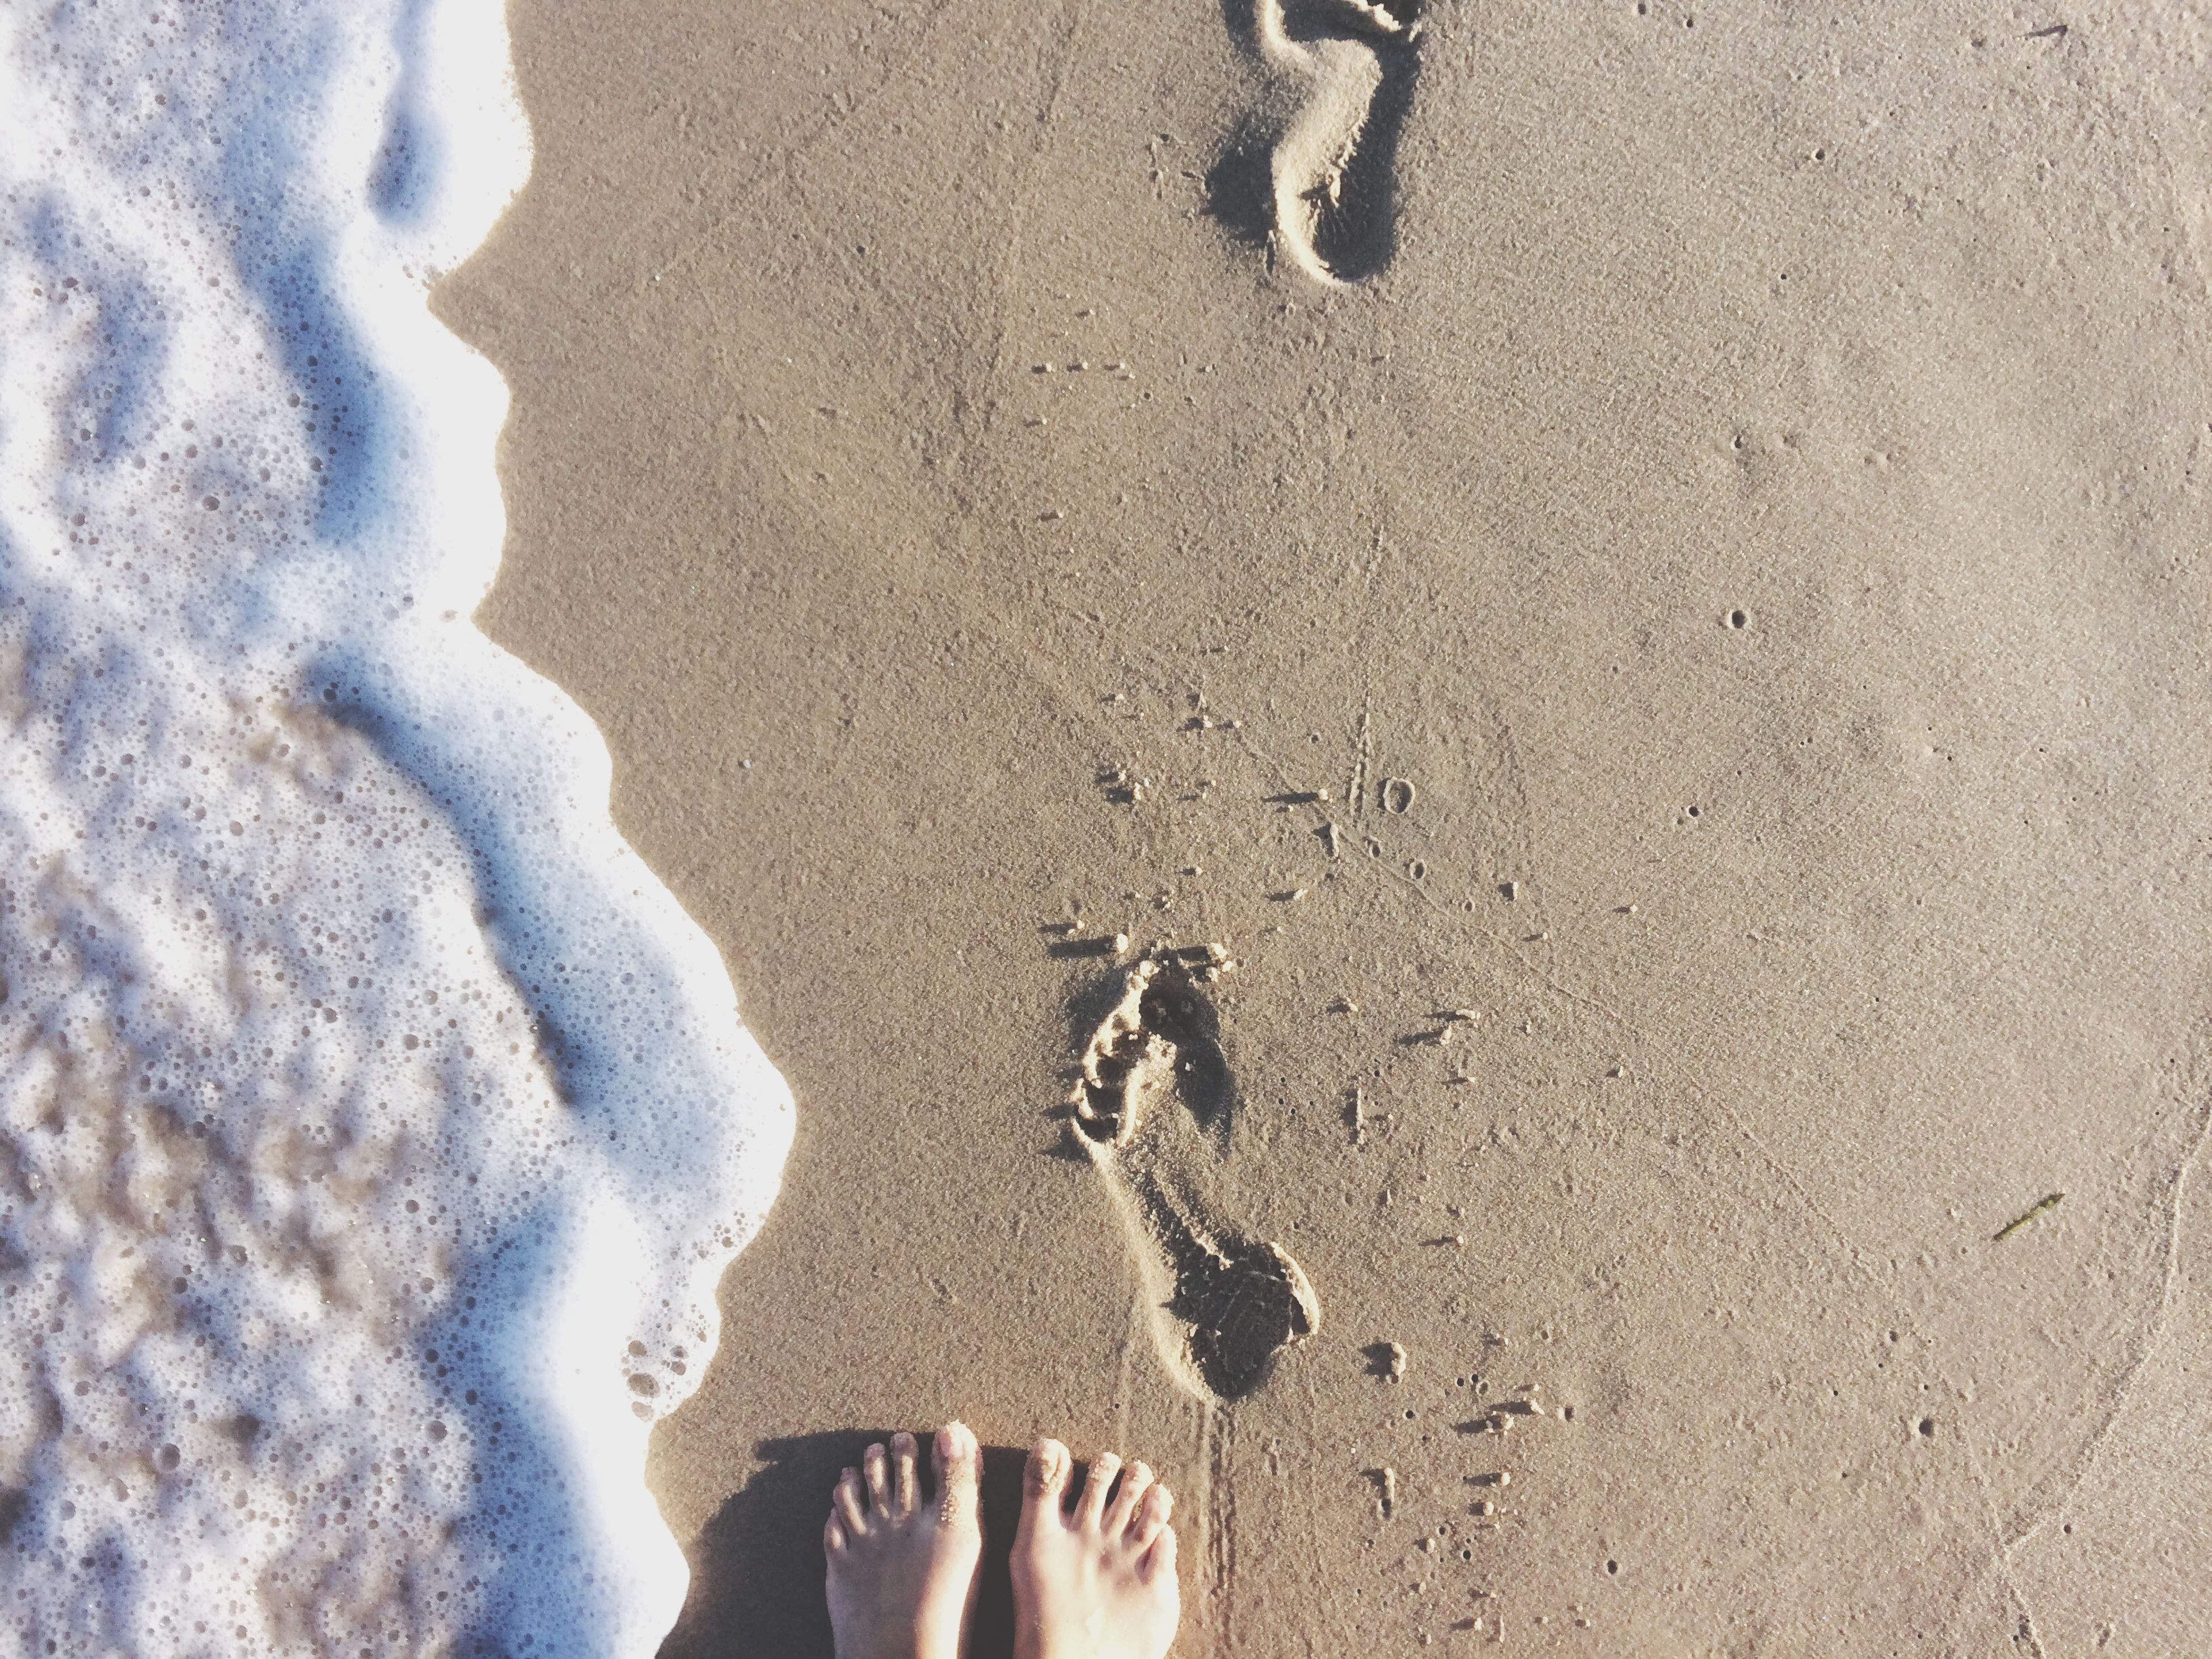 low section, person, personal perspective, beach, standing, human foot, sand, lifestyles, high angle view, leisure activity, shoe, unrecognizable person, shore, barefoot, footprint, water, outdoors